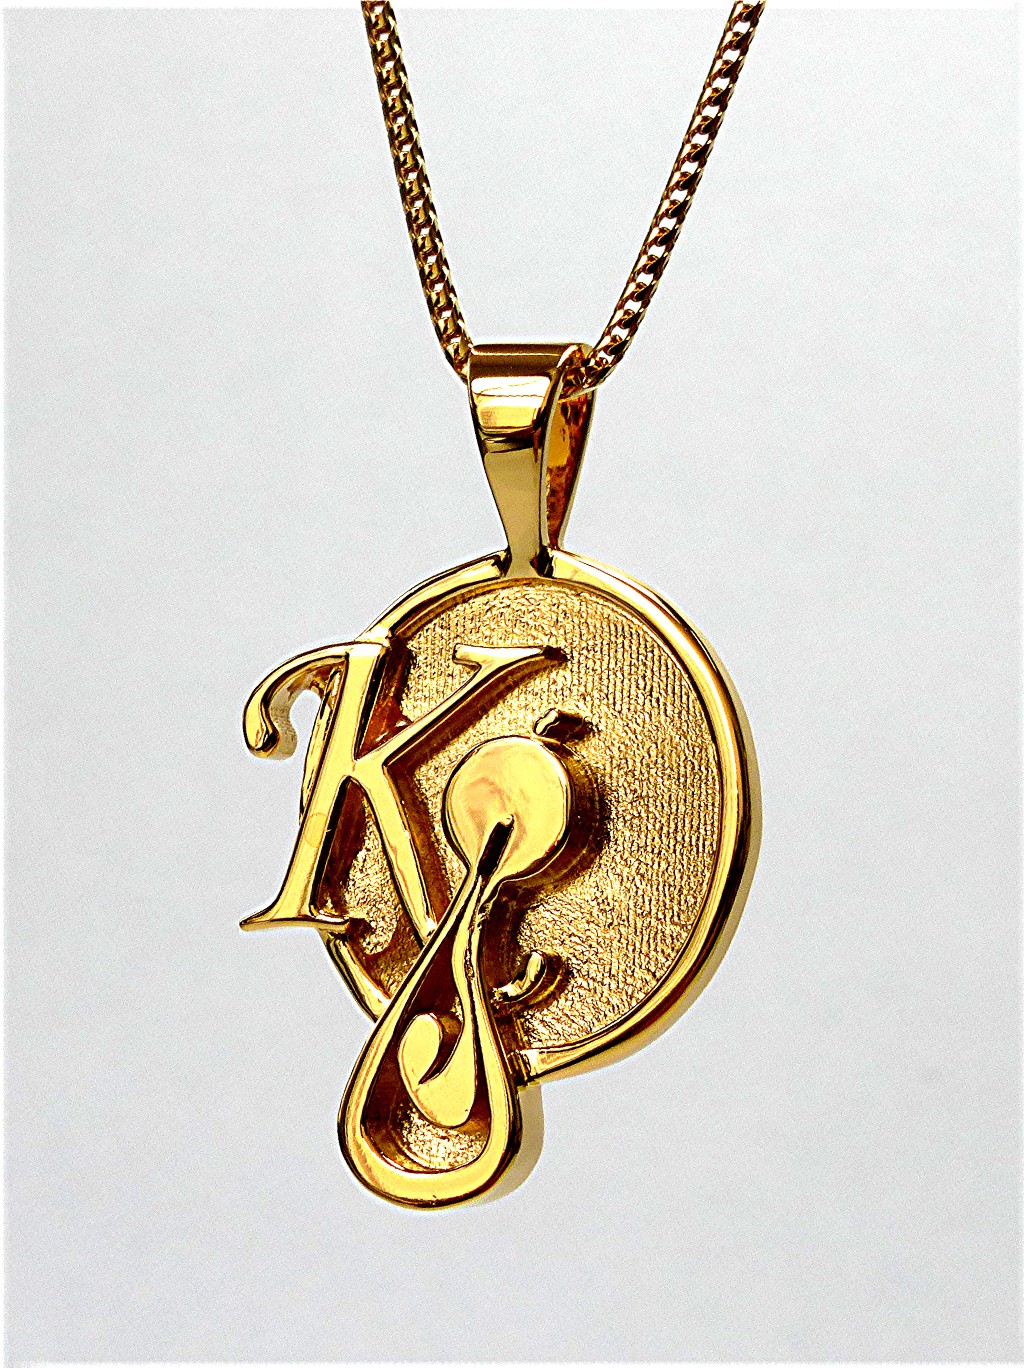 jeweler logo watch vno or mr da custom any pendant design chris with at youtube letters shield